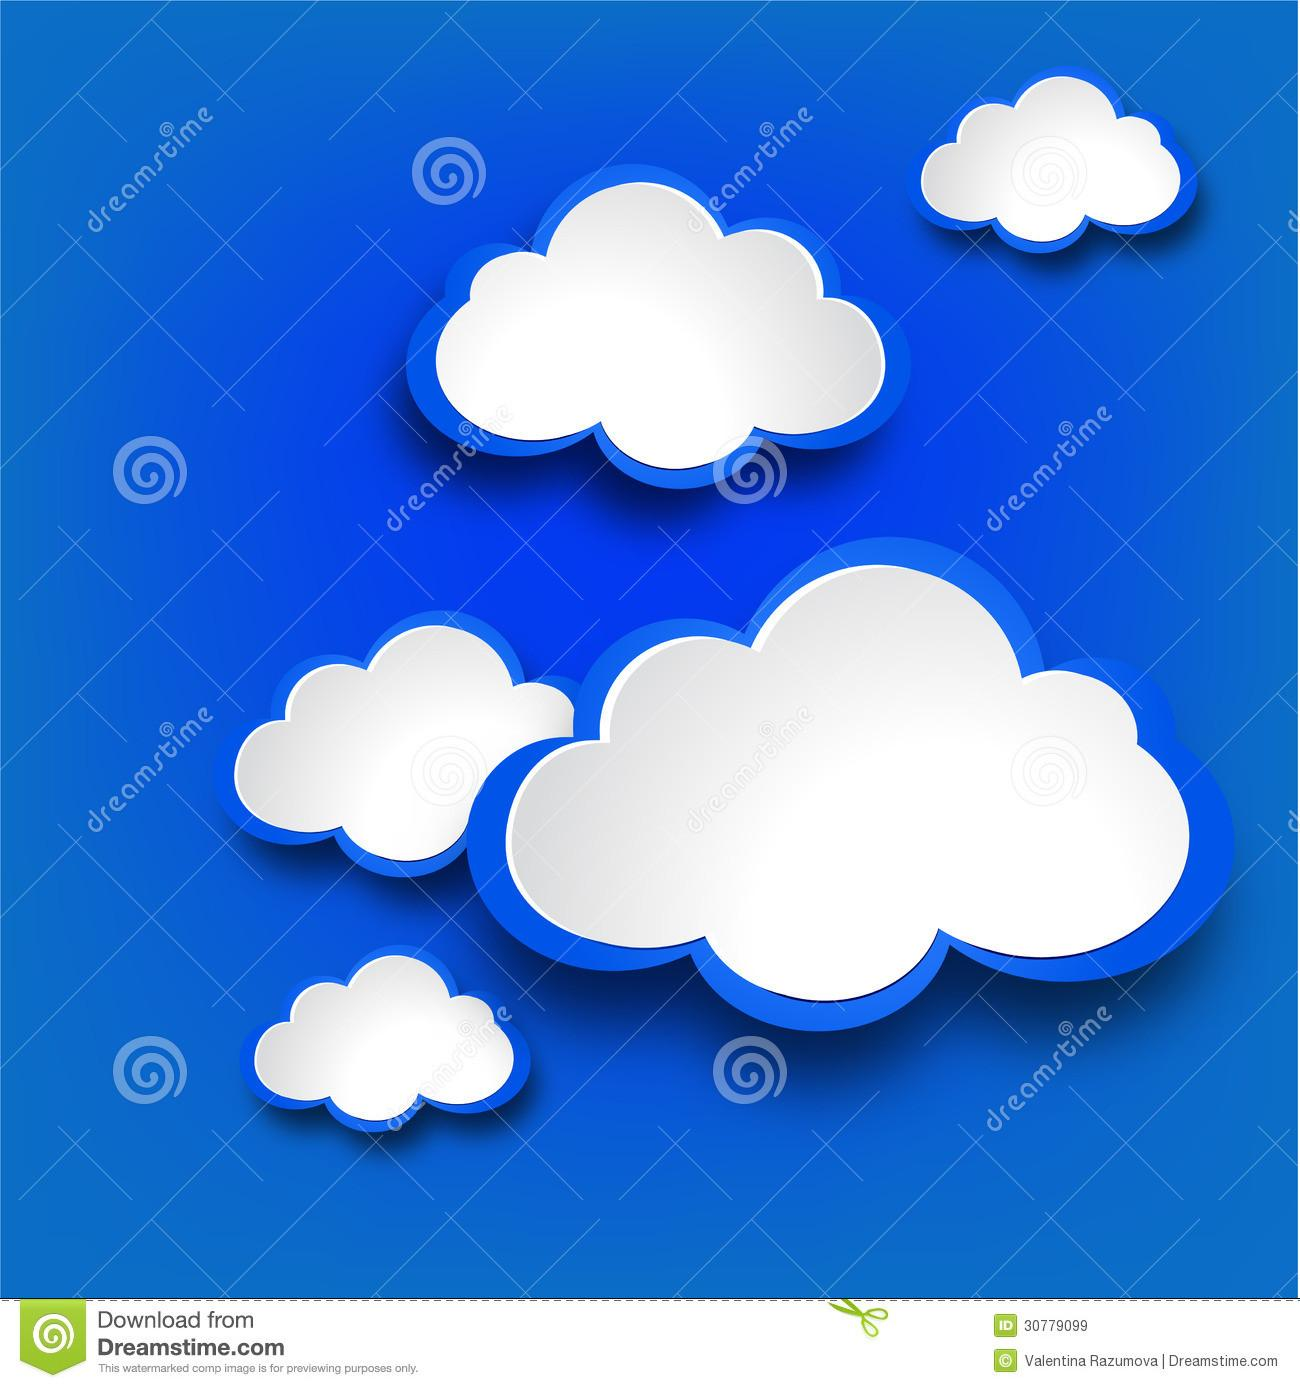 Abstract Web Design Clouds Royalty